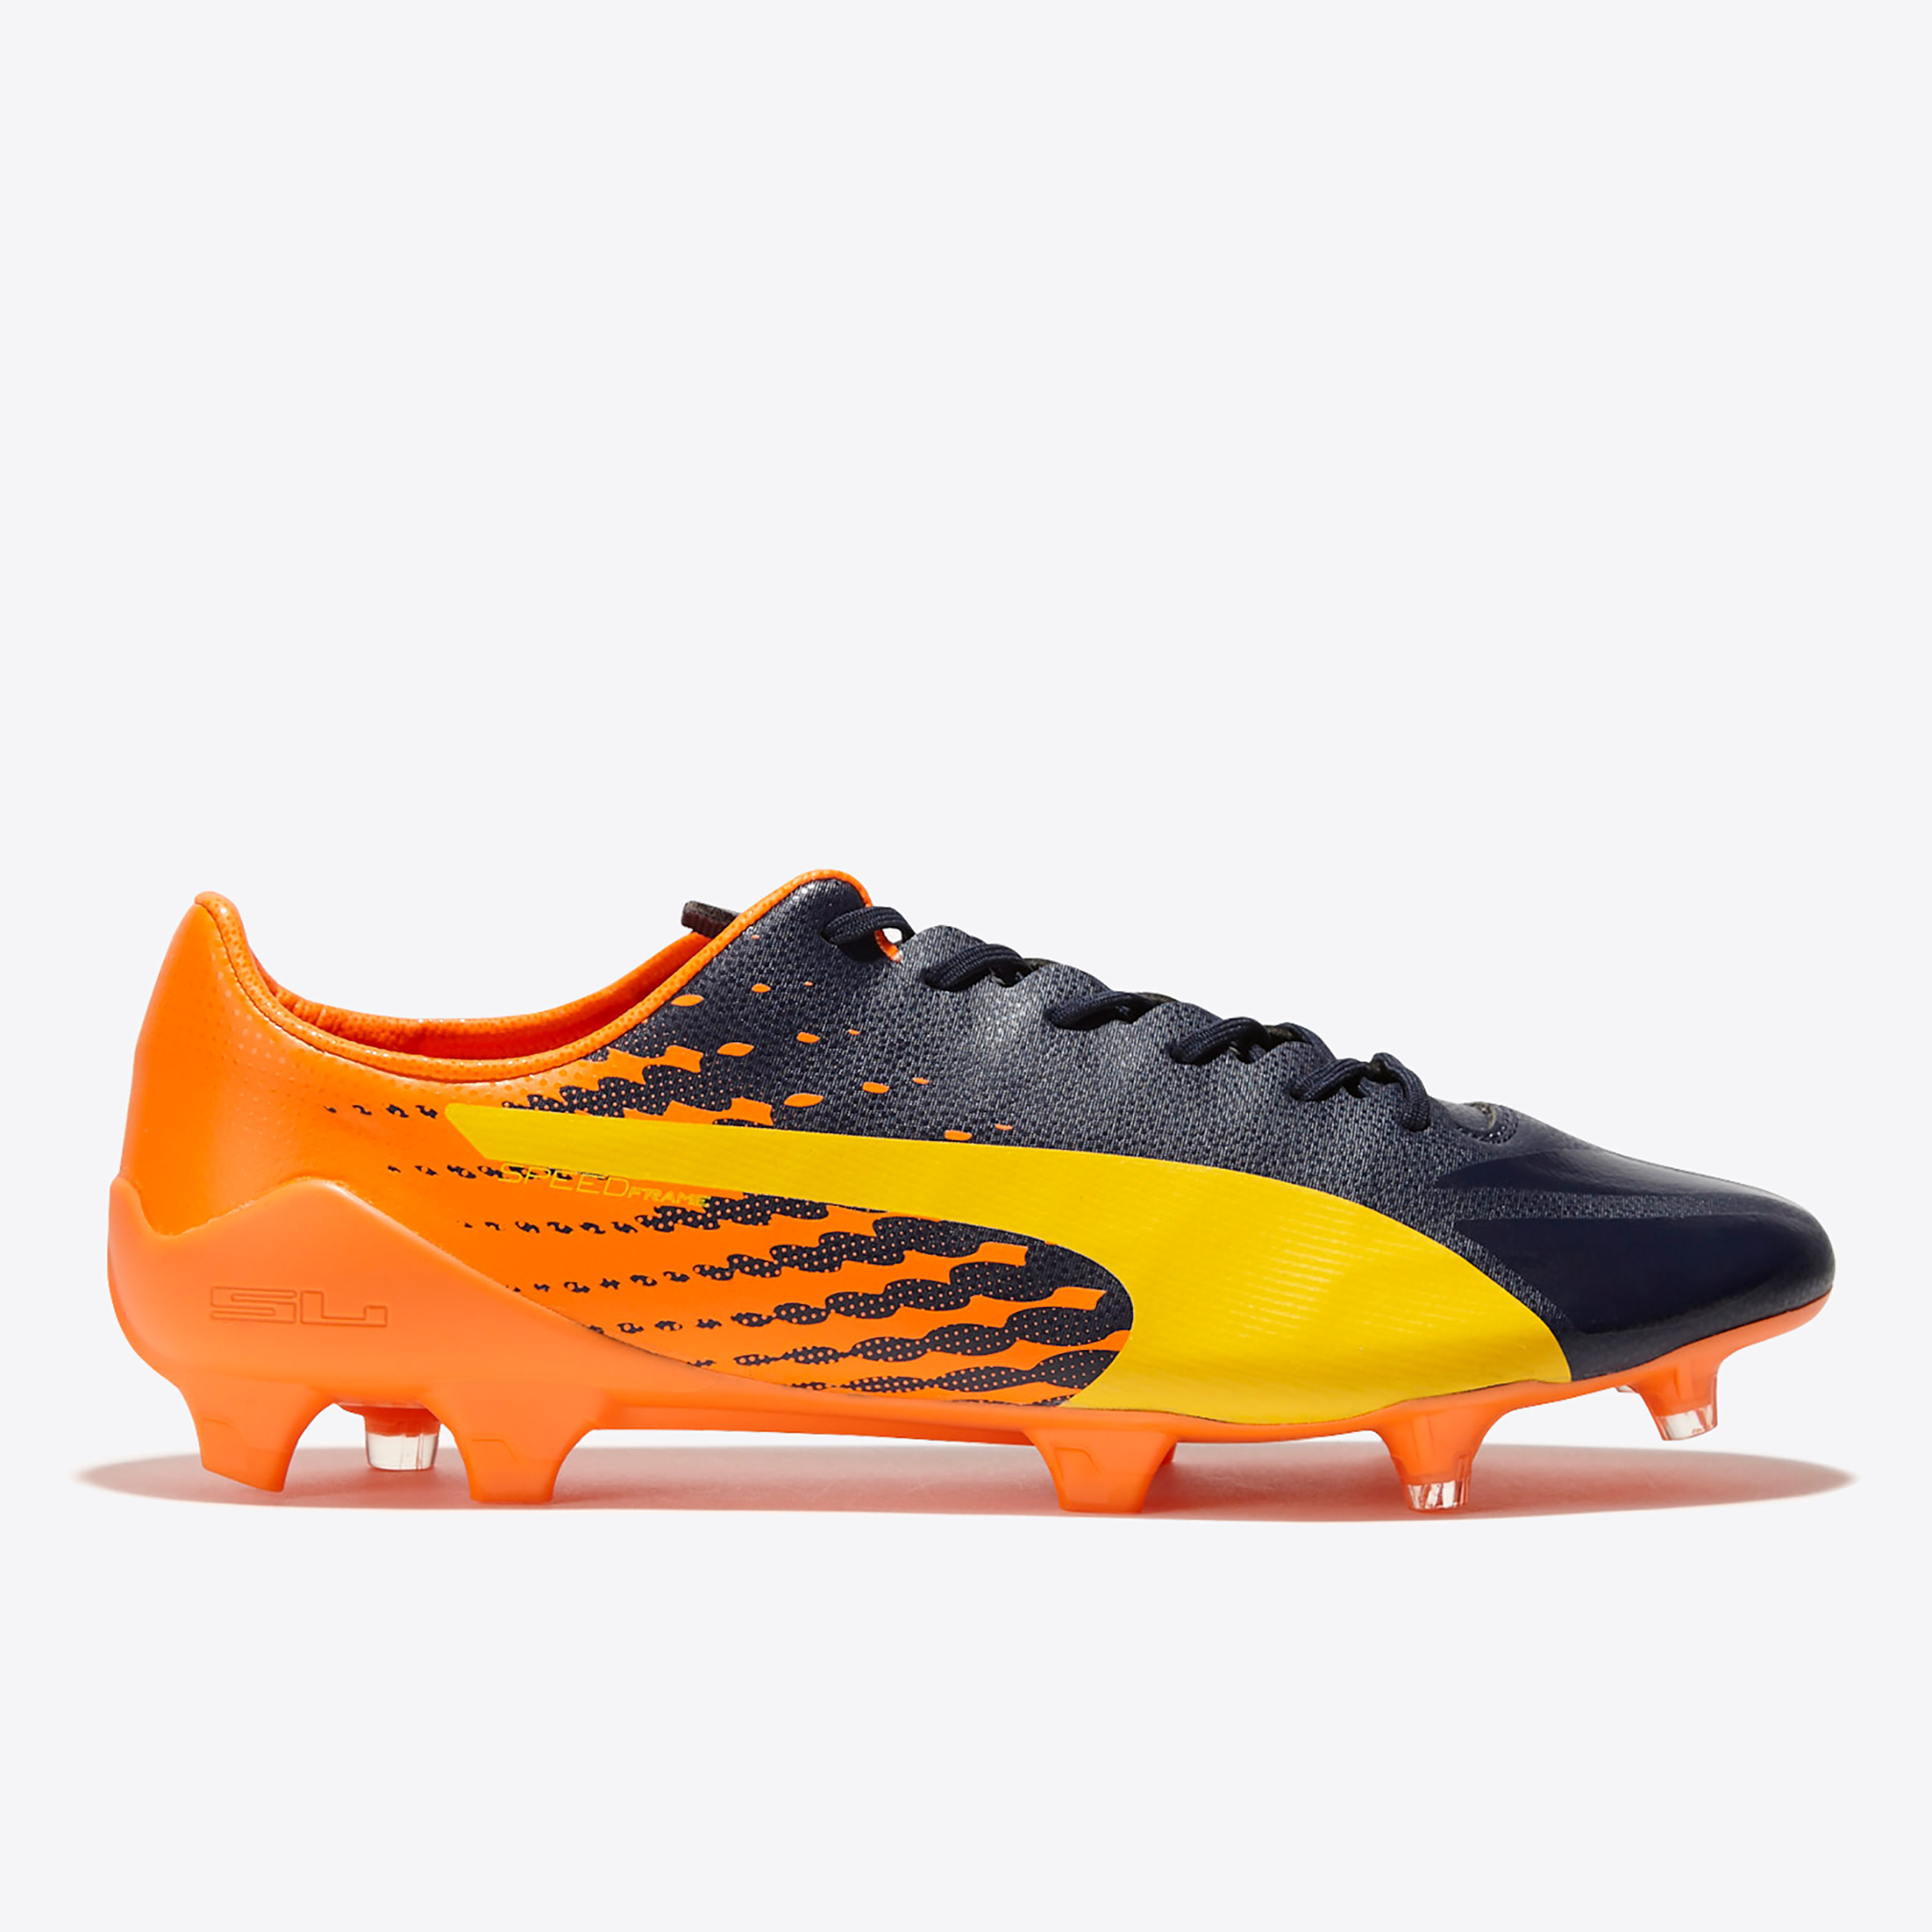 d7d2d3b5748f Buy Puma evoSPEED Rugby Boots - compare prices